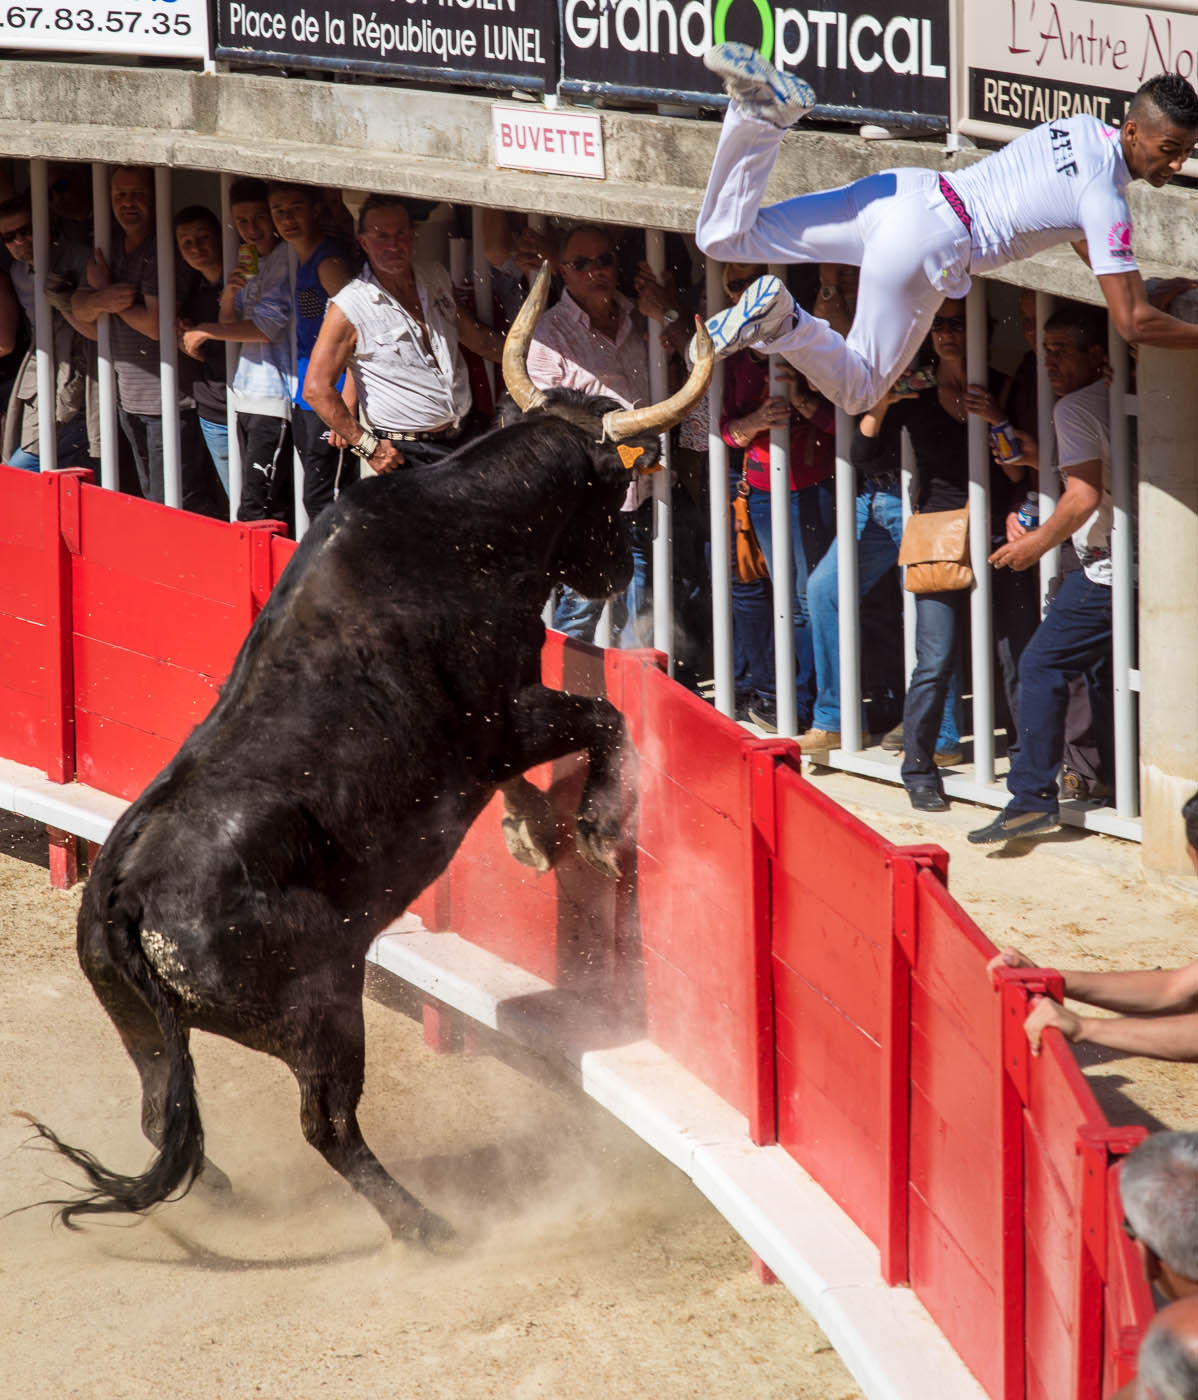 The star raseteur Katif performs spectacular acrobatics to escape a bull in Lunel's course camarguaise